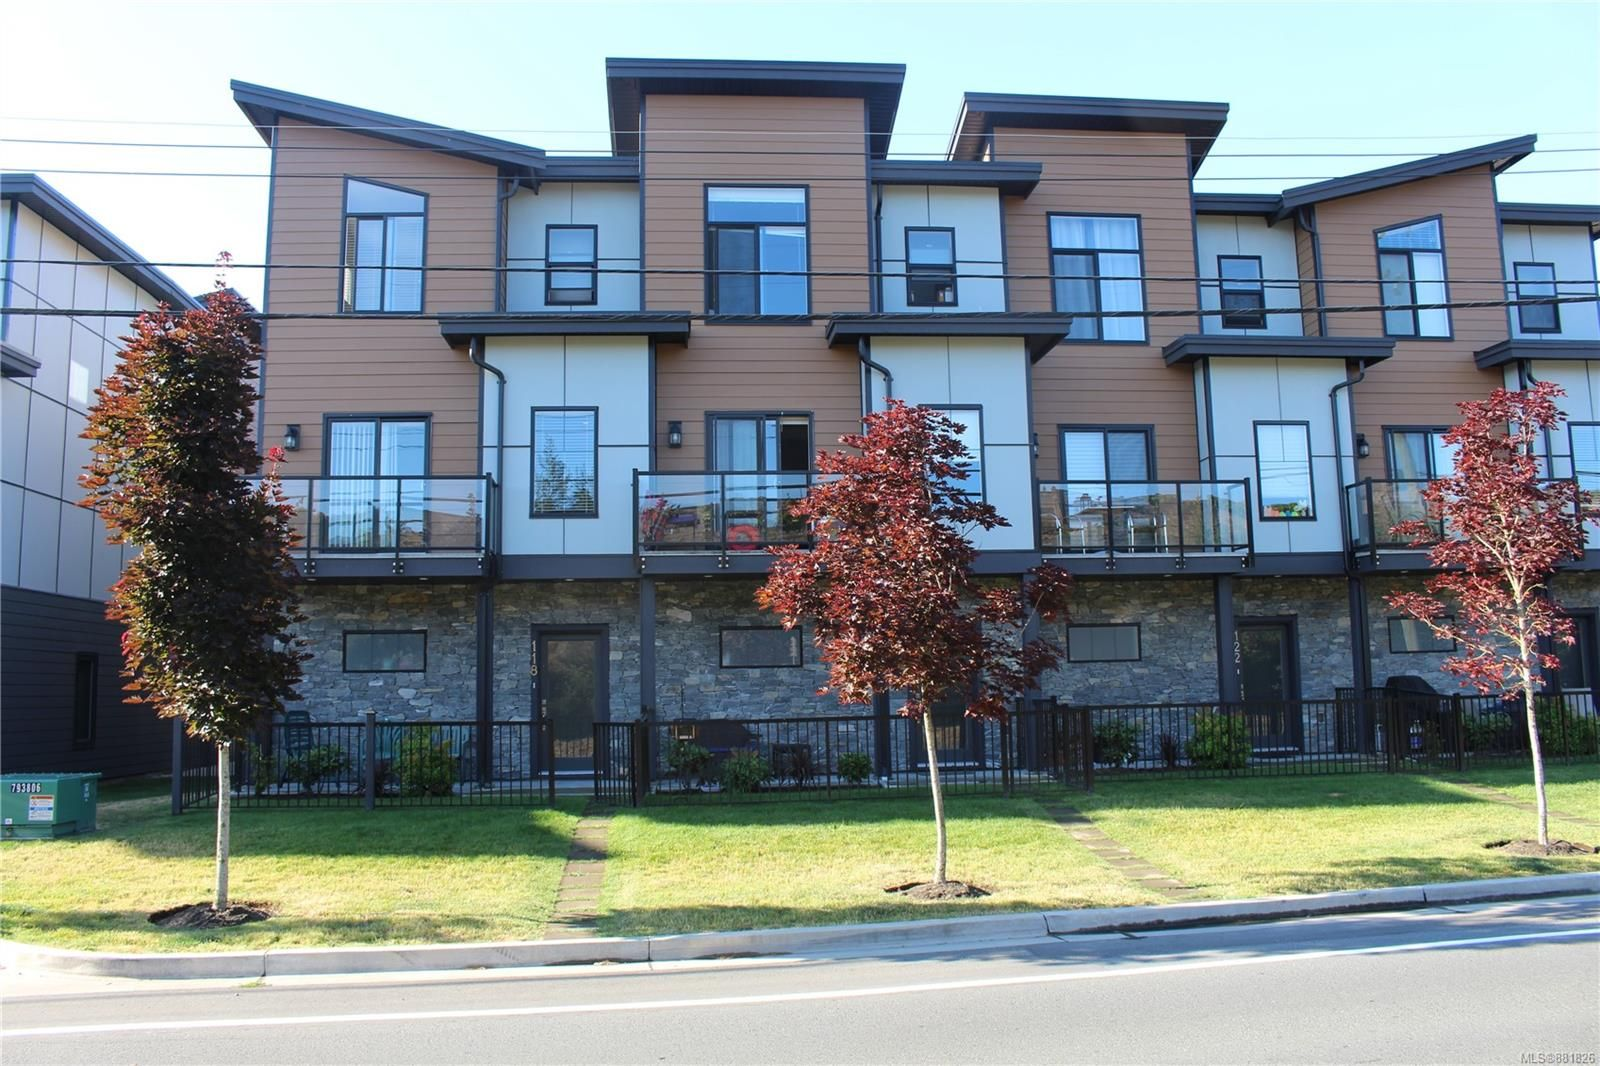 Main Photo: 118 687 Strandlund Ave in : La Langford Proper Row/Townhouse for sale (Langford)  : MLS®# 881826